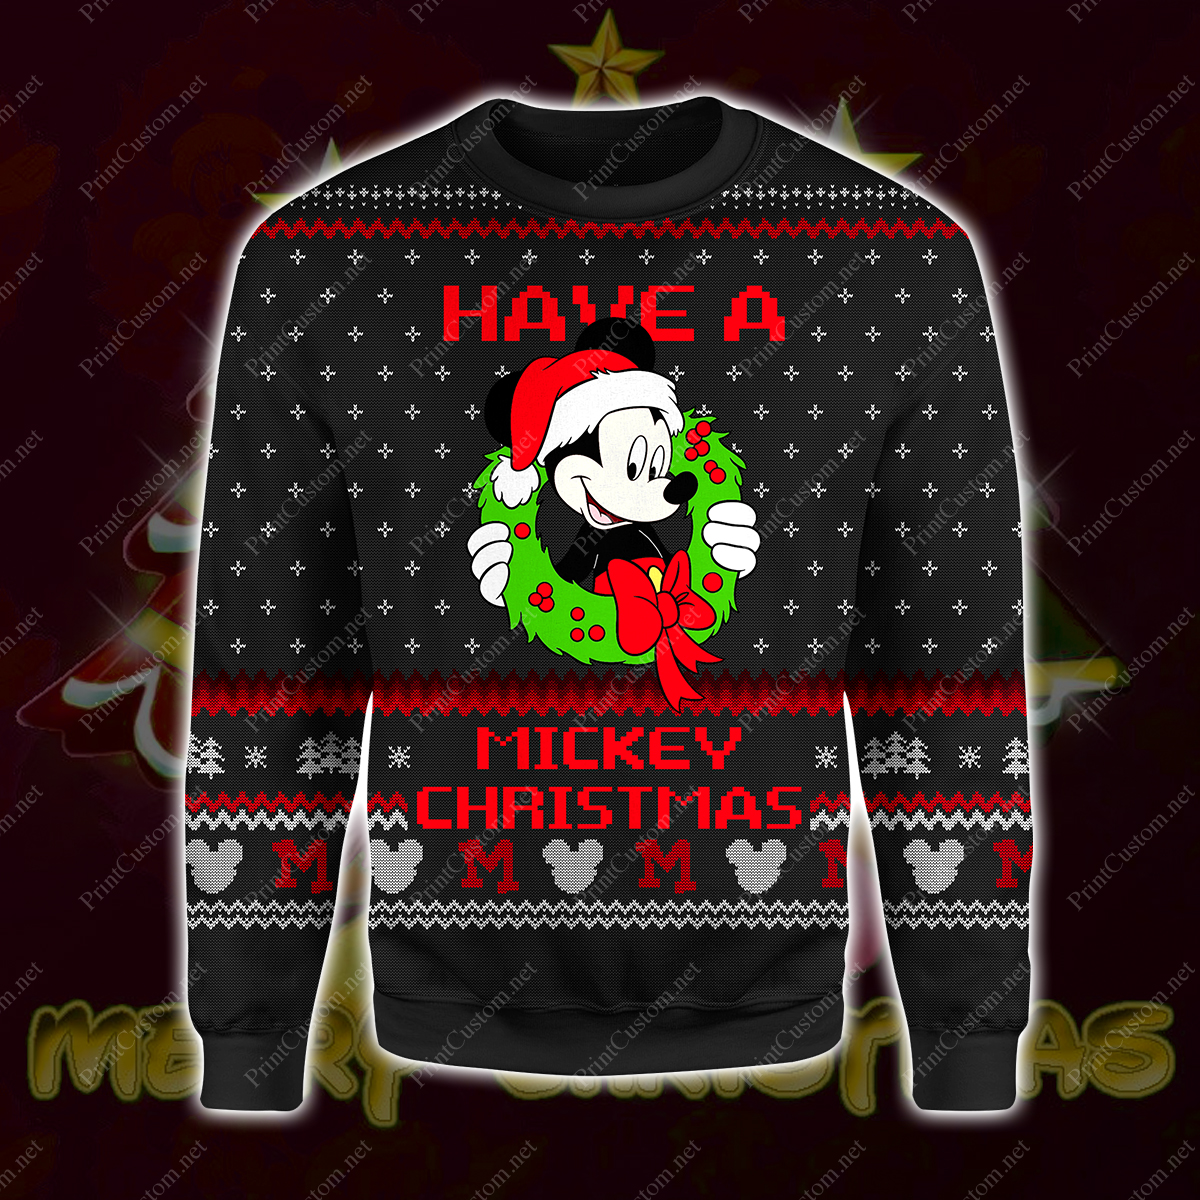 Have a mickey christmas full printing ugly christmas sweater 2